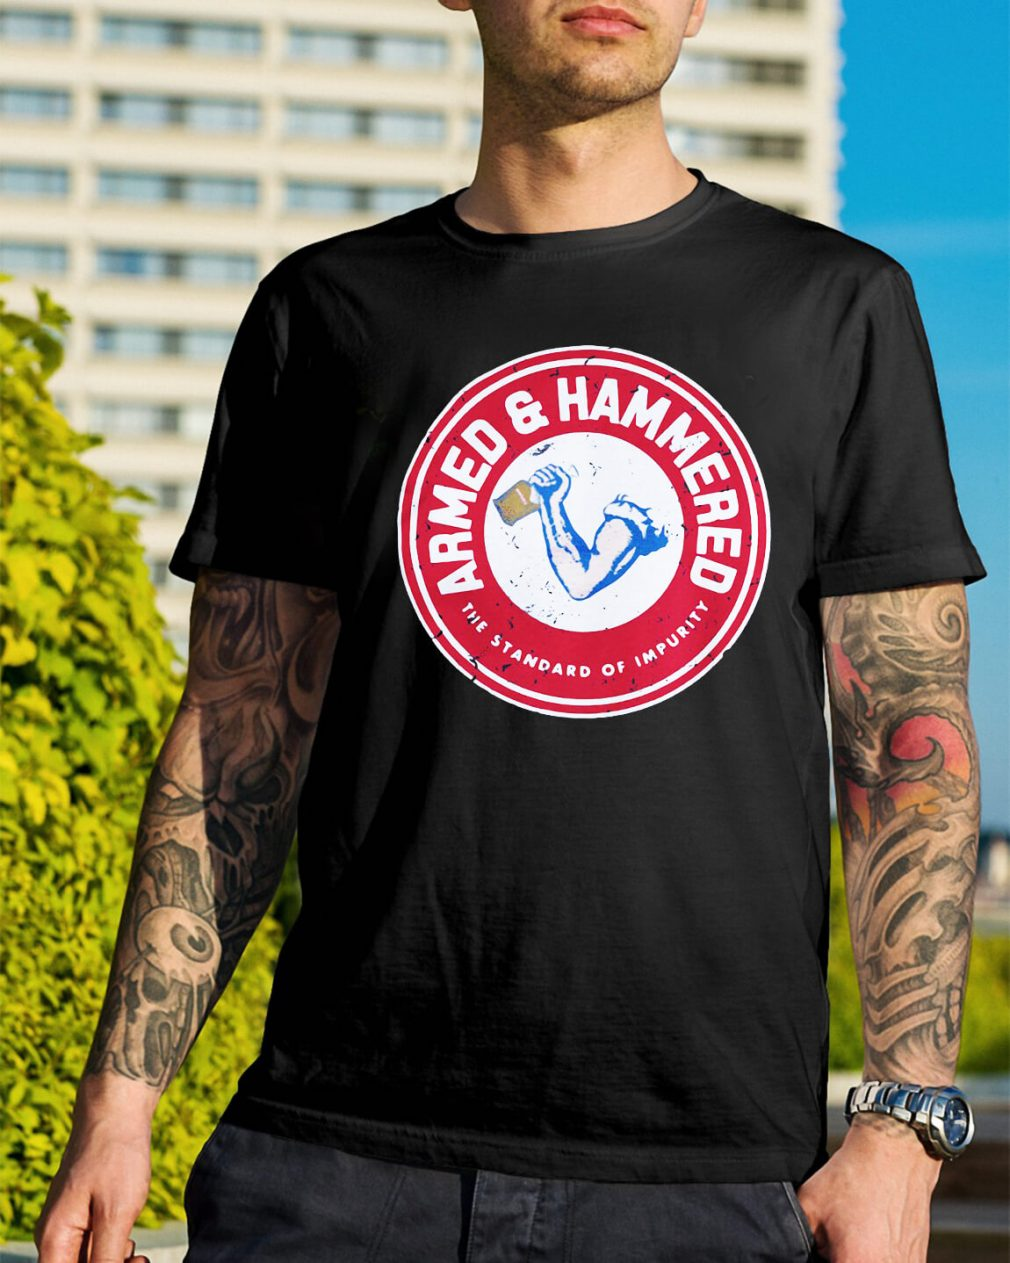 The standard of impurity Armed and Hammered shirt